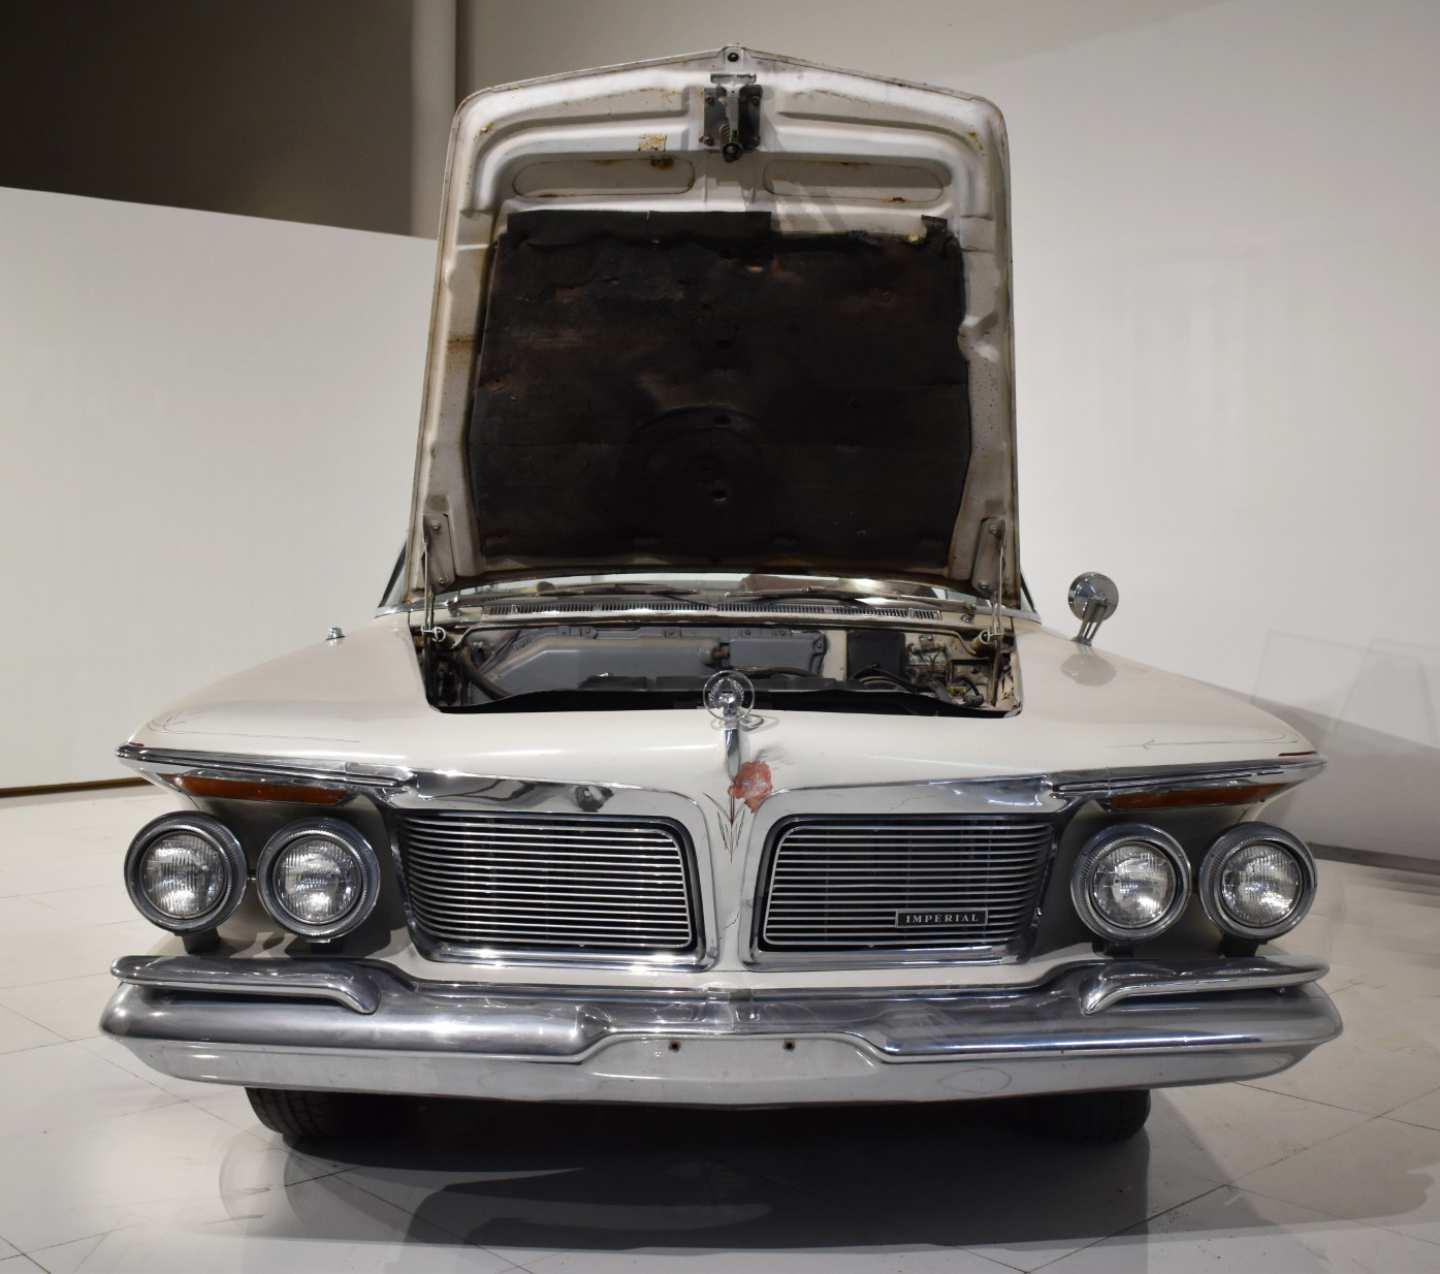 16th Image of a 1962 CHRYSLER IMPERIAL